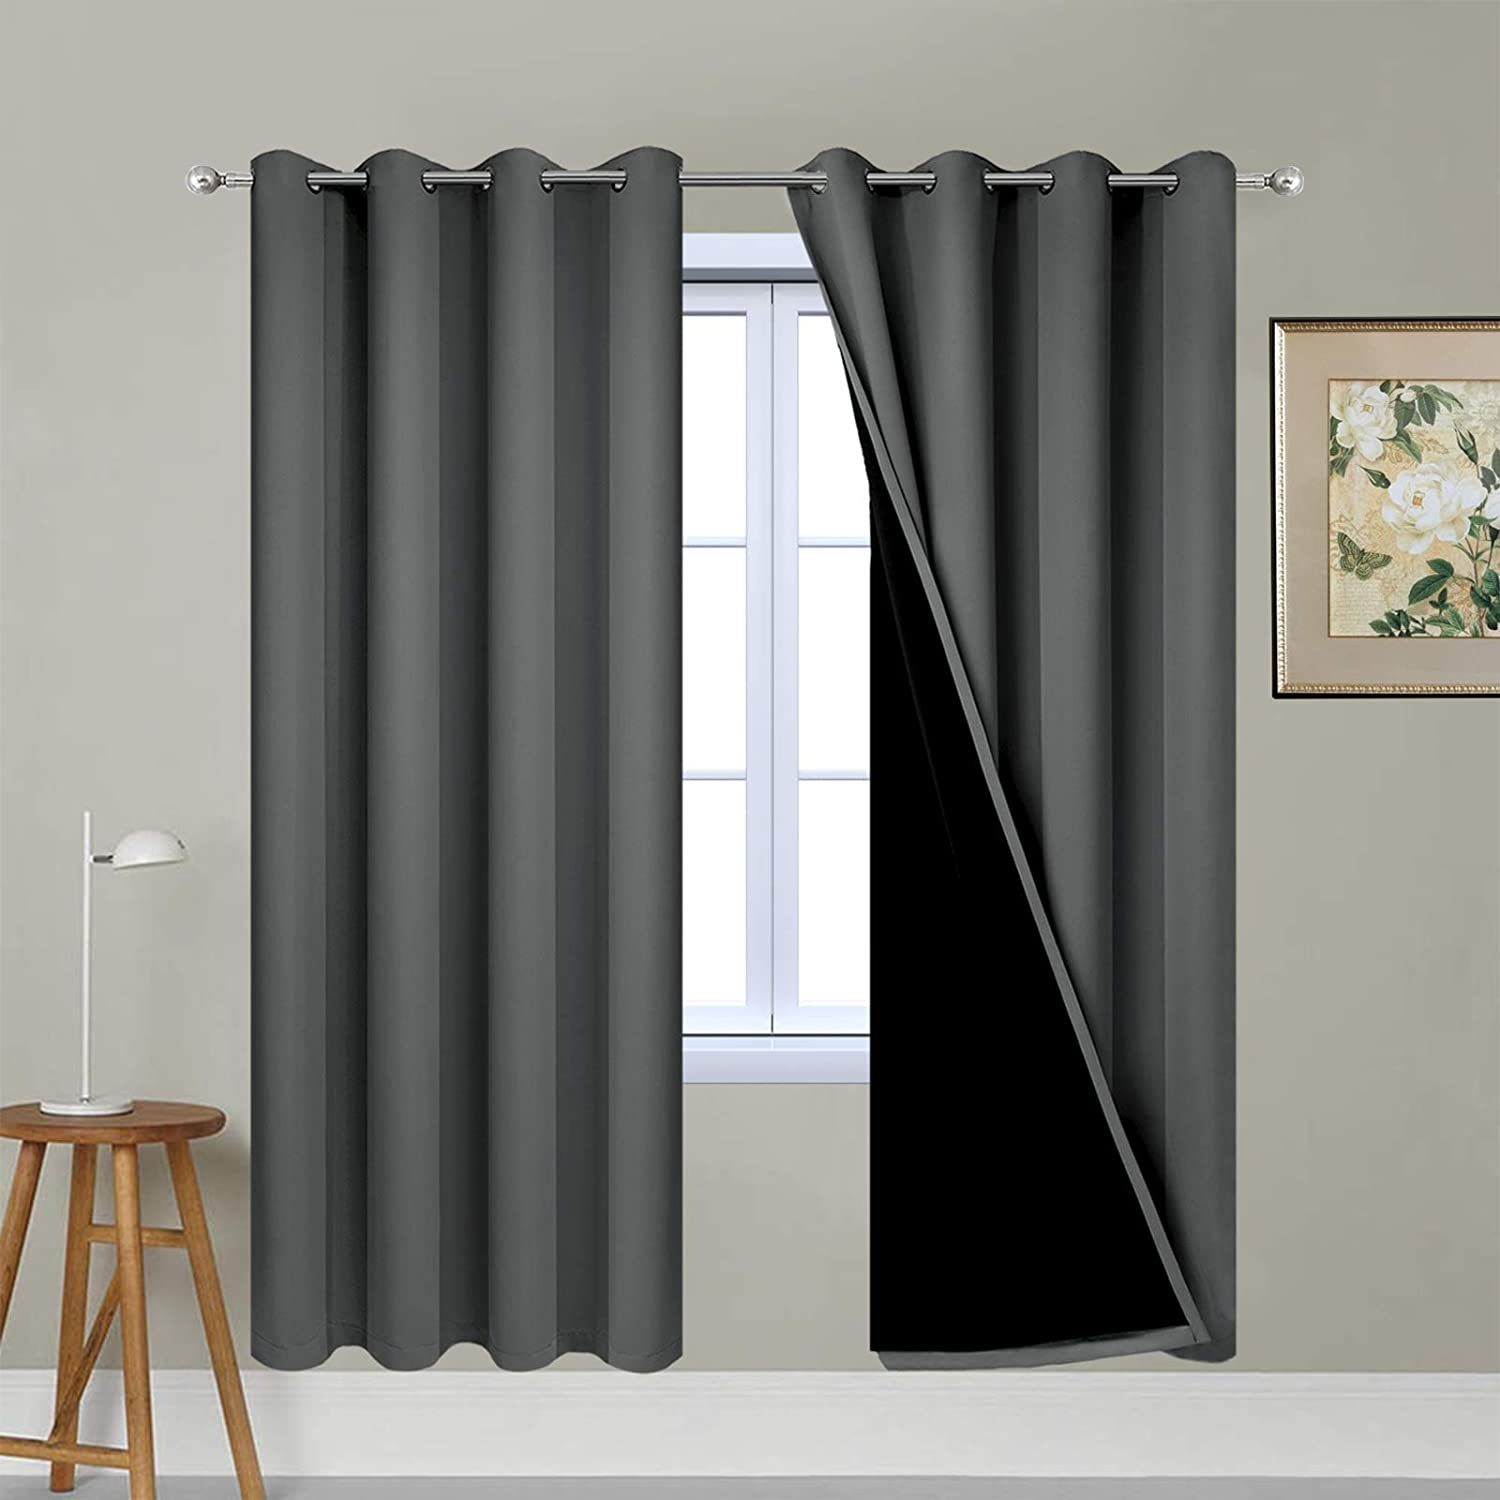 Yakamok 63 Inches Long Dark Gray 100% Blackout Curtains, Noise Reducing Window Drapes,Room Darkening Curtain Panels with Black Liners for Bedroom(Dark Grey, 2 Panels, 52W x 63L)